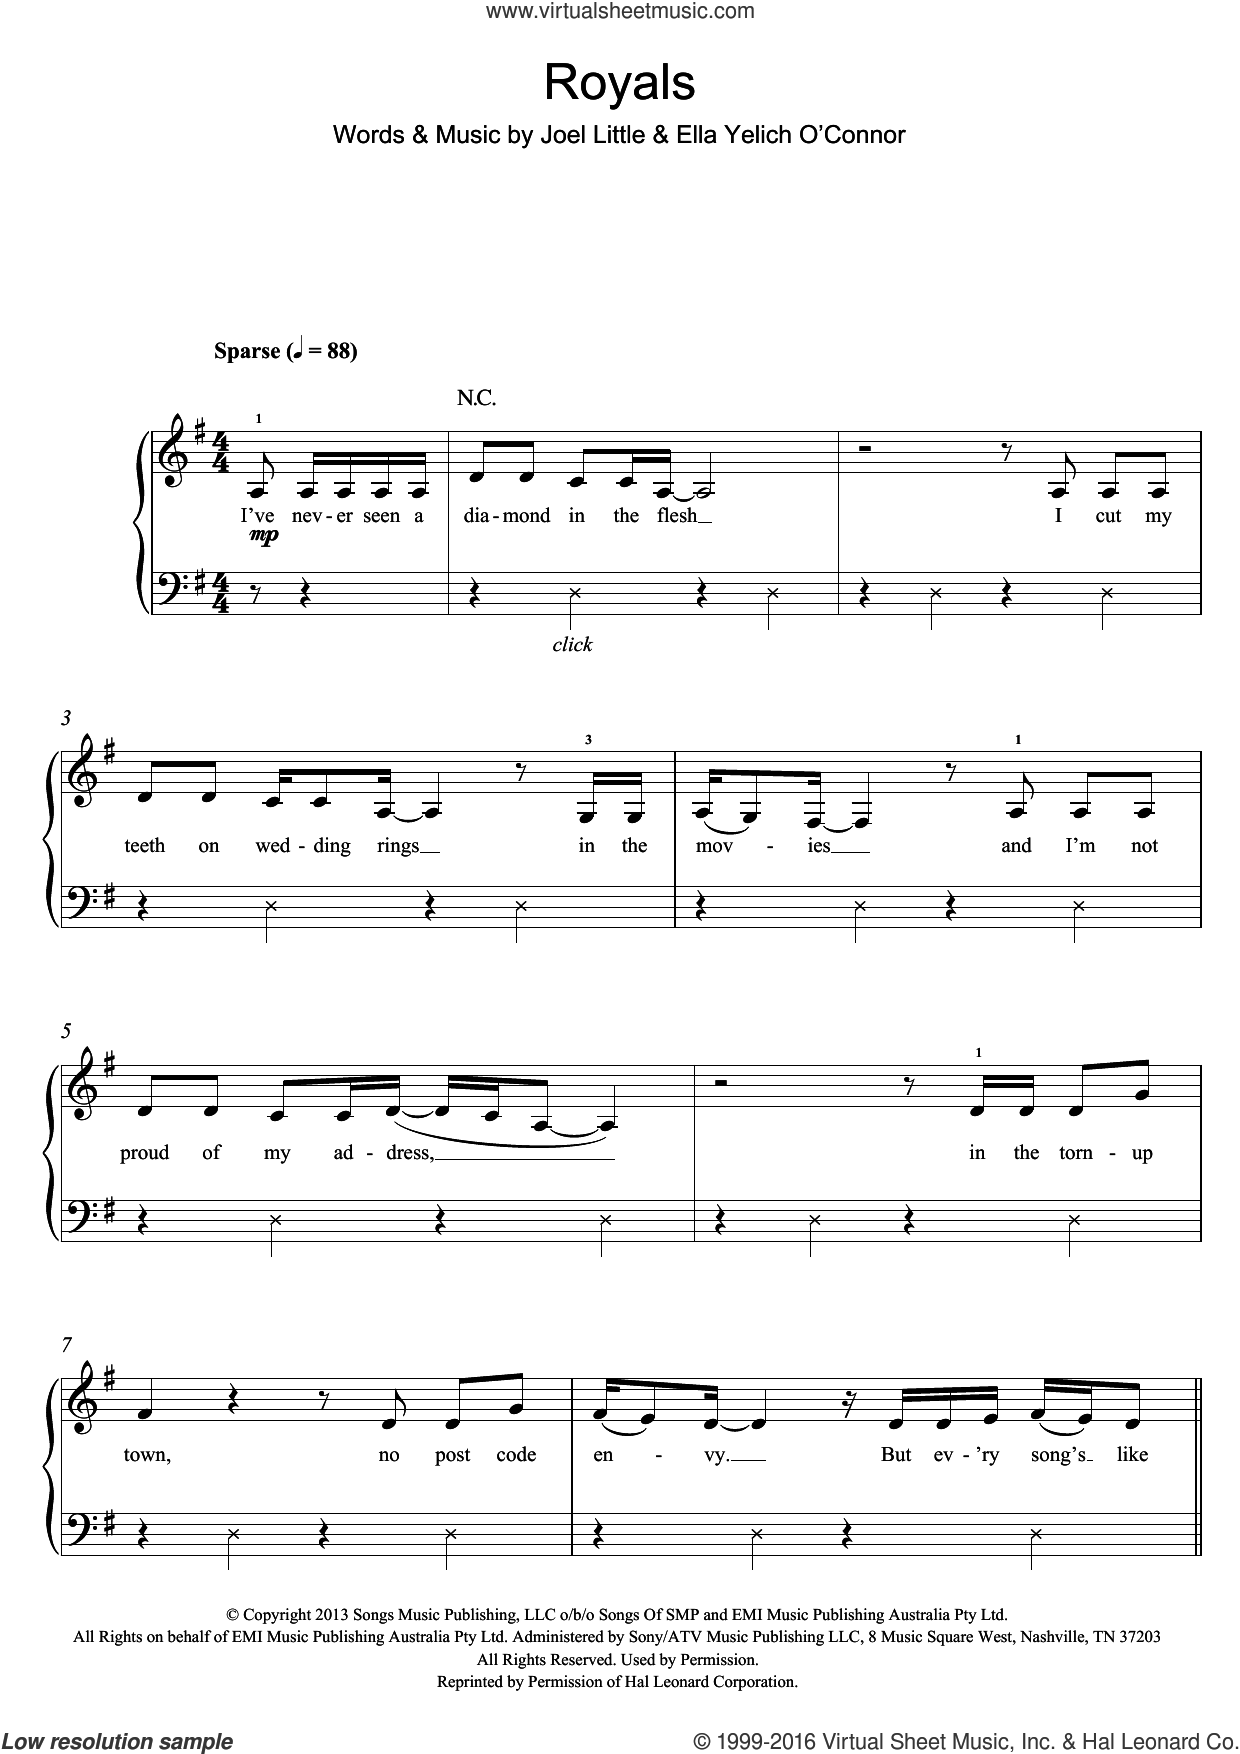 Royals sheet music for piano solo by Ella Yelich O'Connor